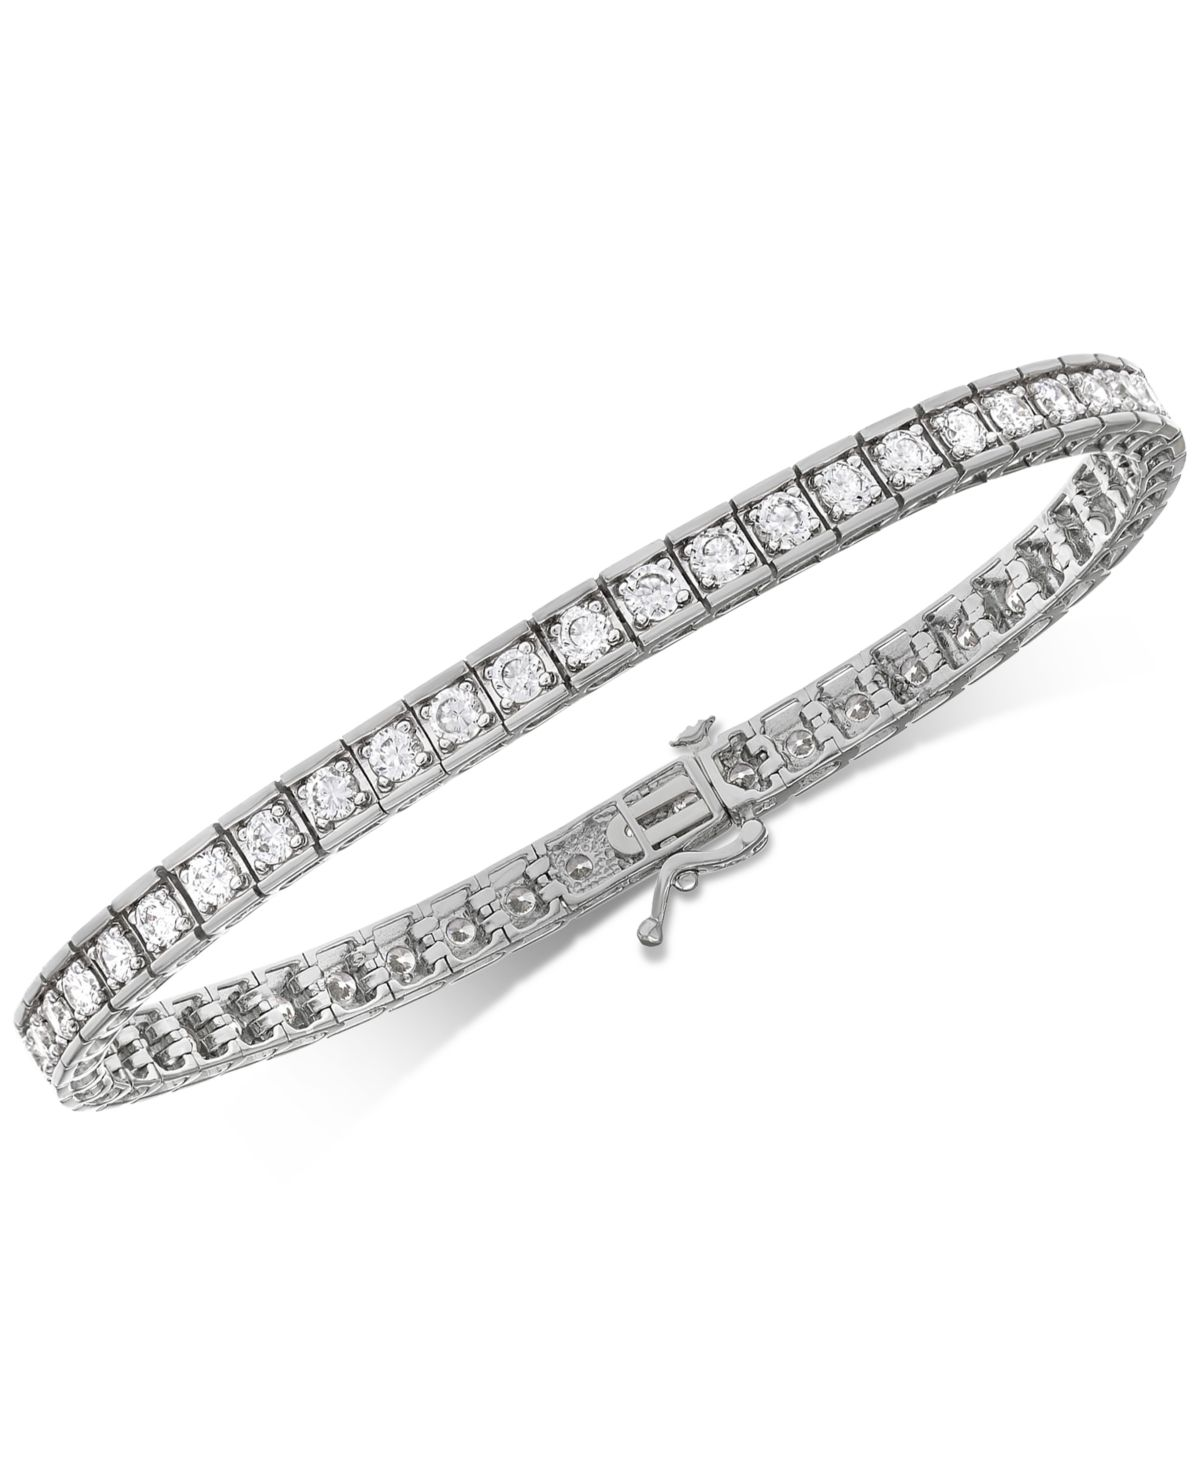 Diamond Tennis Bracelet 4 Ct T W In 10k White Gold White Gold Bracelets Diamond White Gold